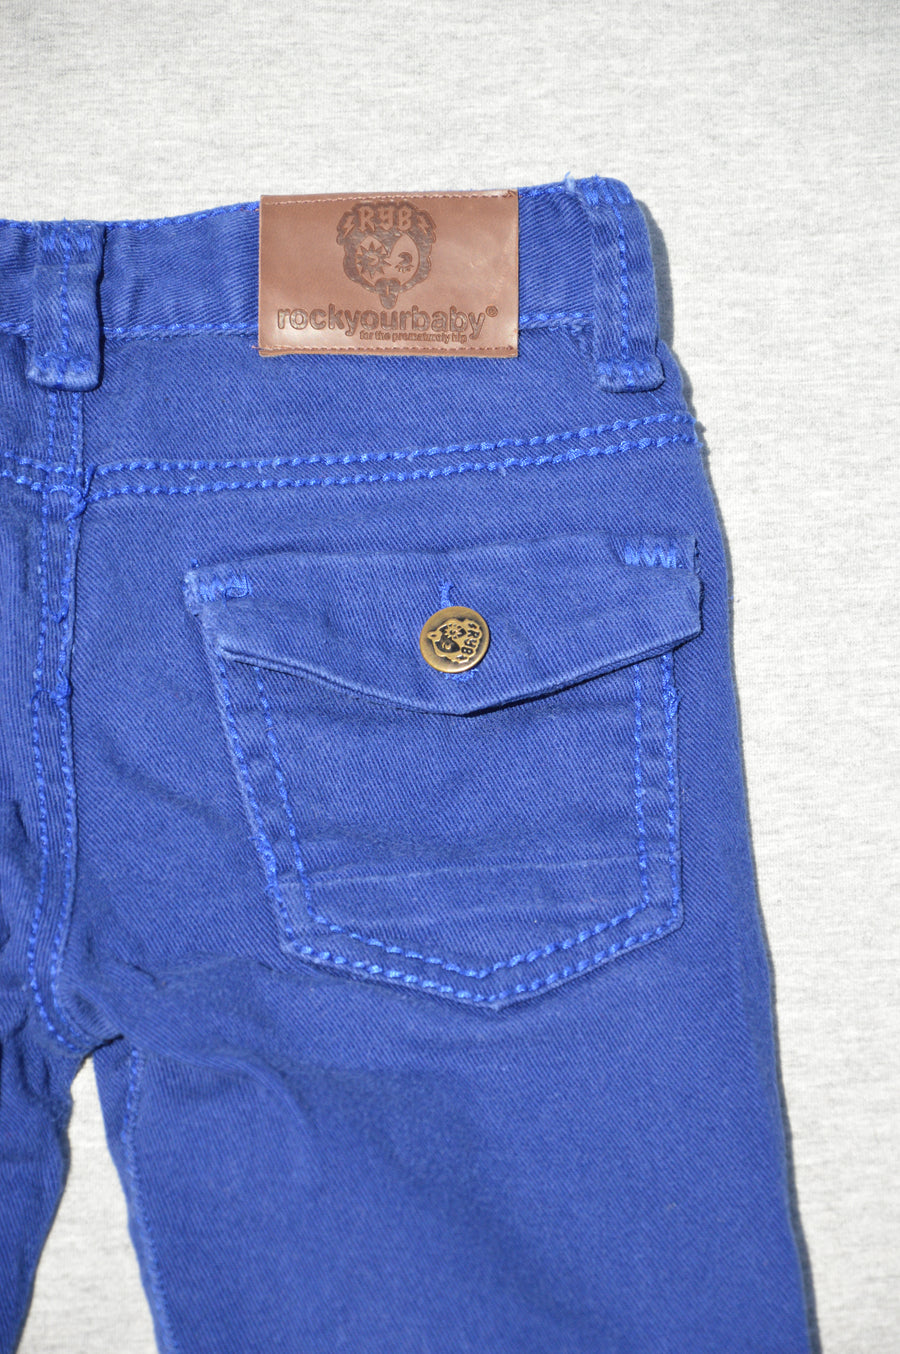 Rock Your Baby royal blue denim jeans, size 6